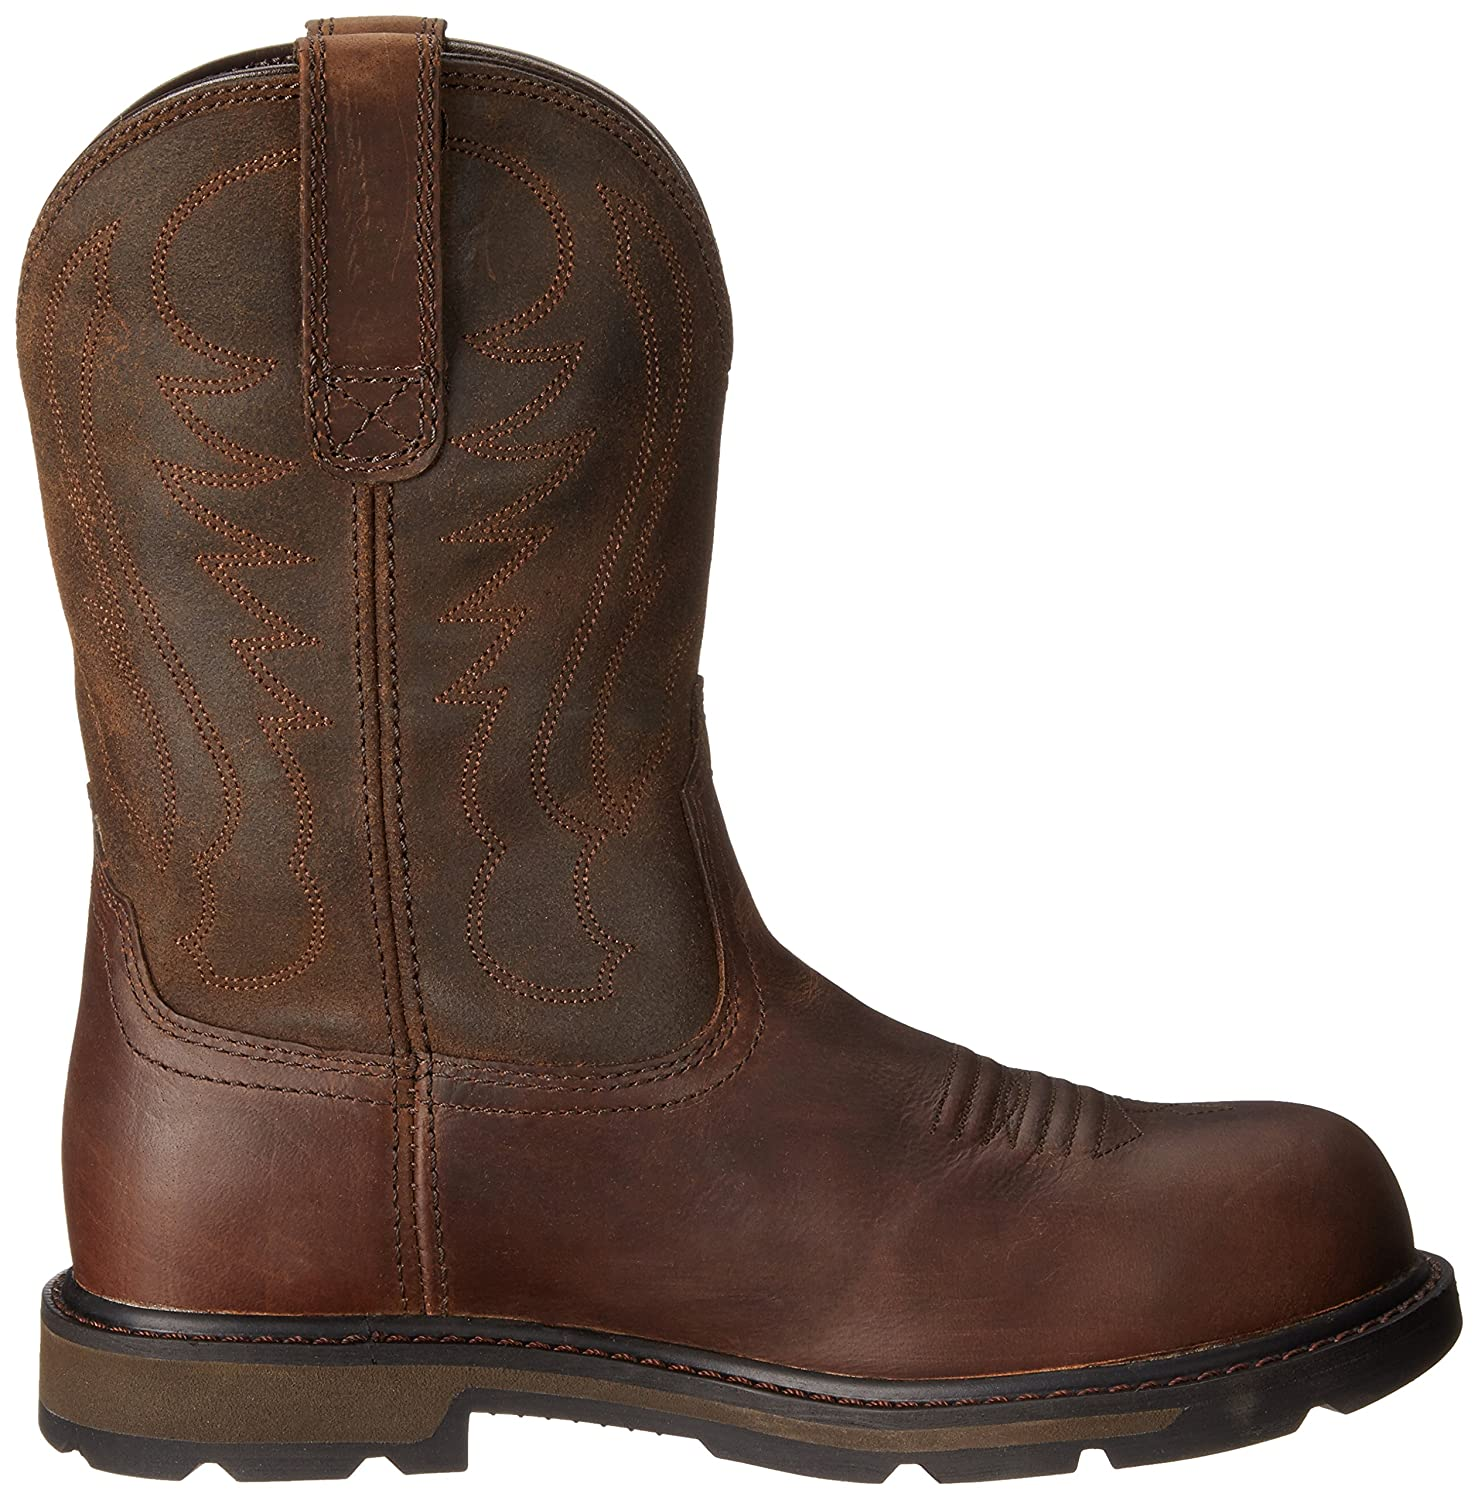 e9cef09e7d8 Amazon.com  Ariat Work Men s Groundbreaker Pull-on Steel Toe Work Boot   Shoes